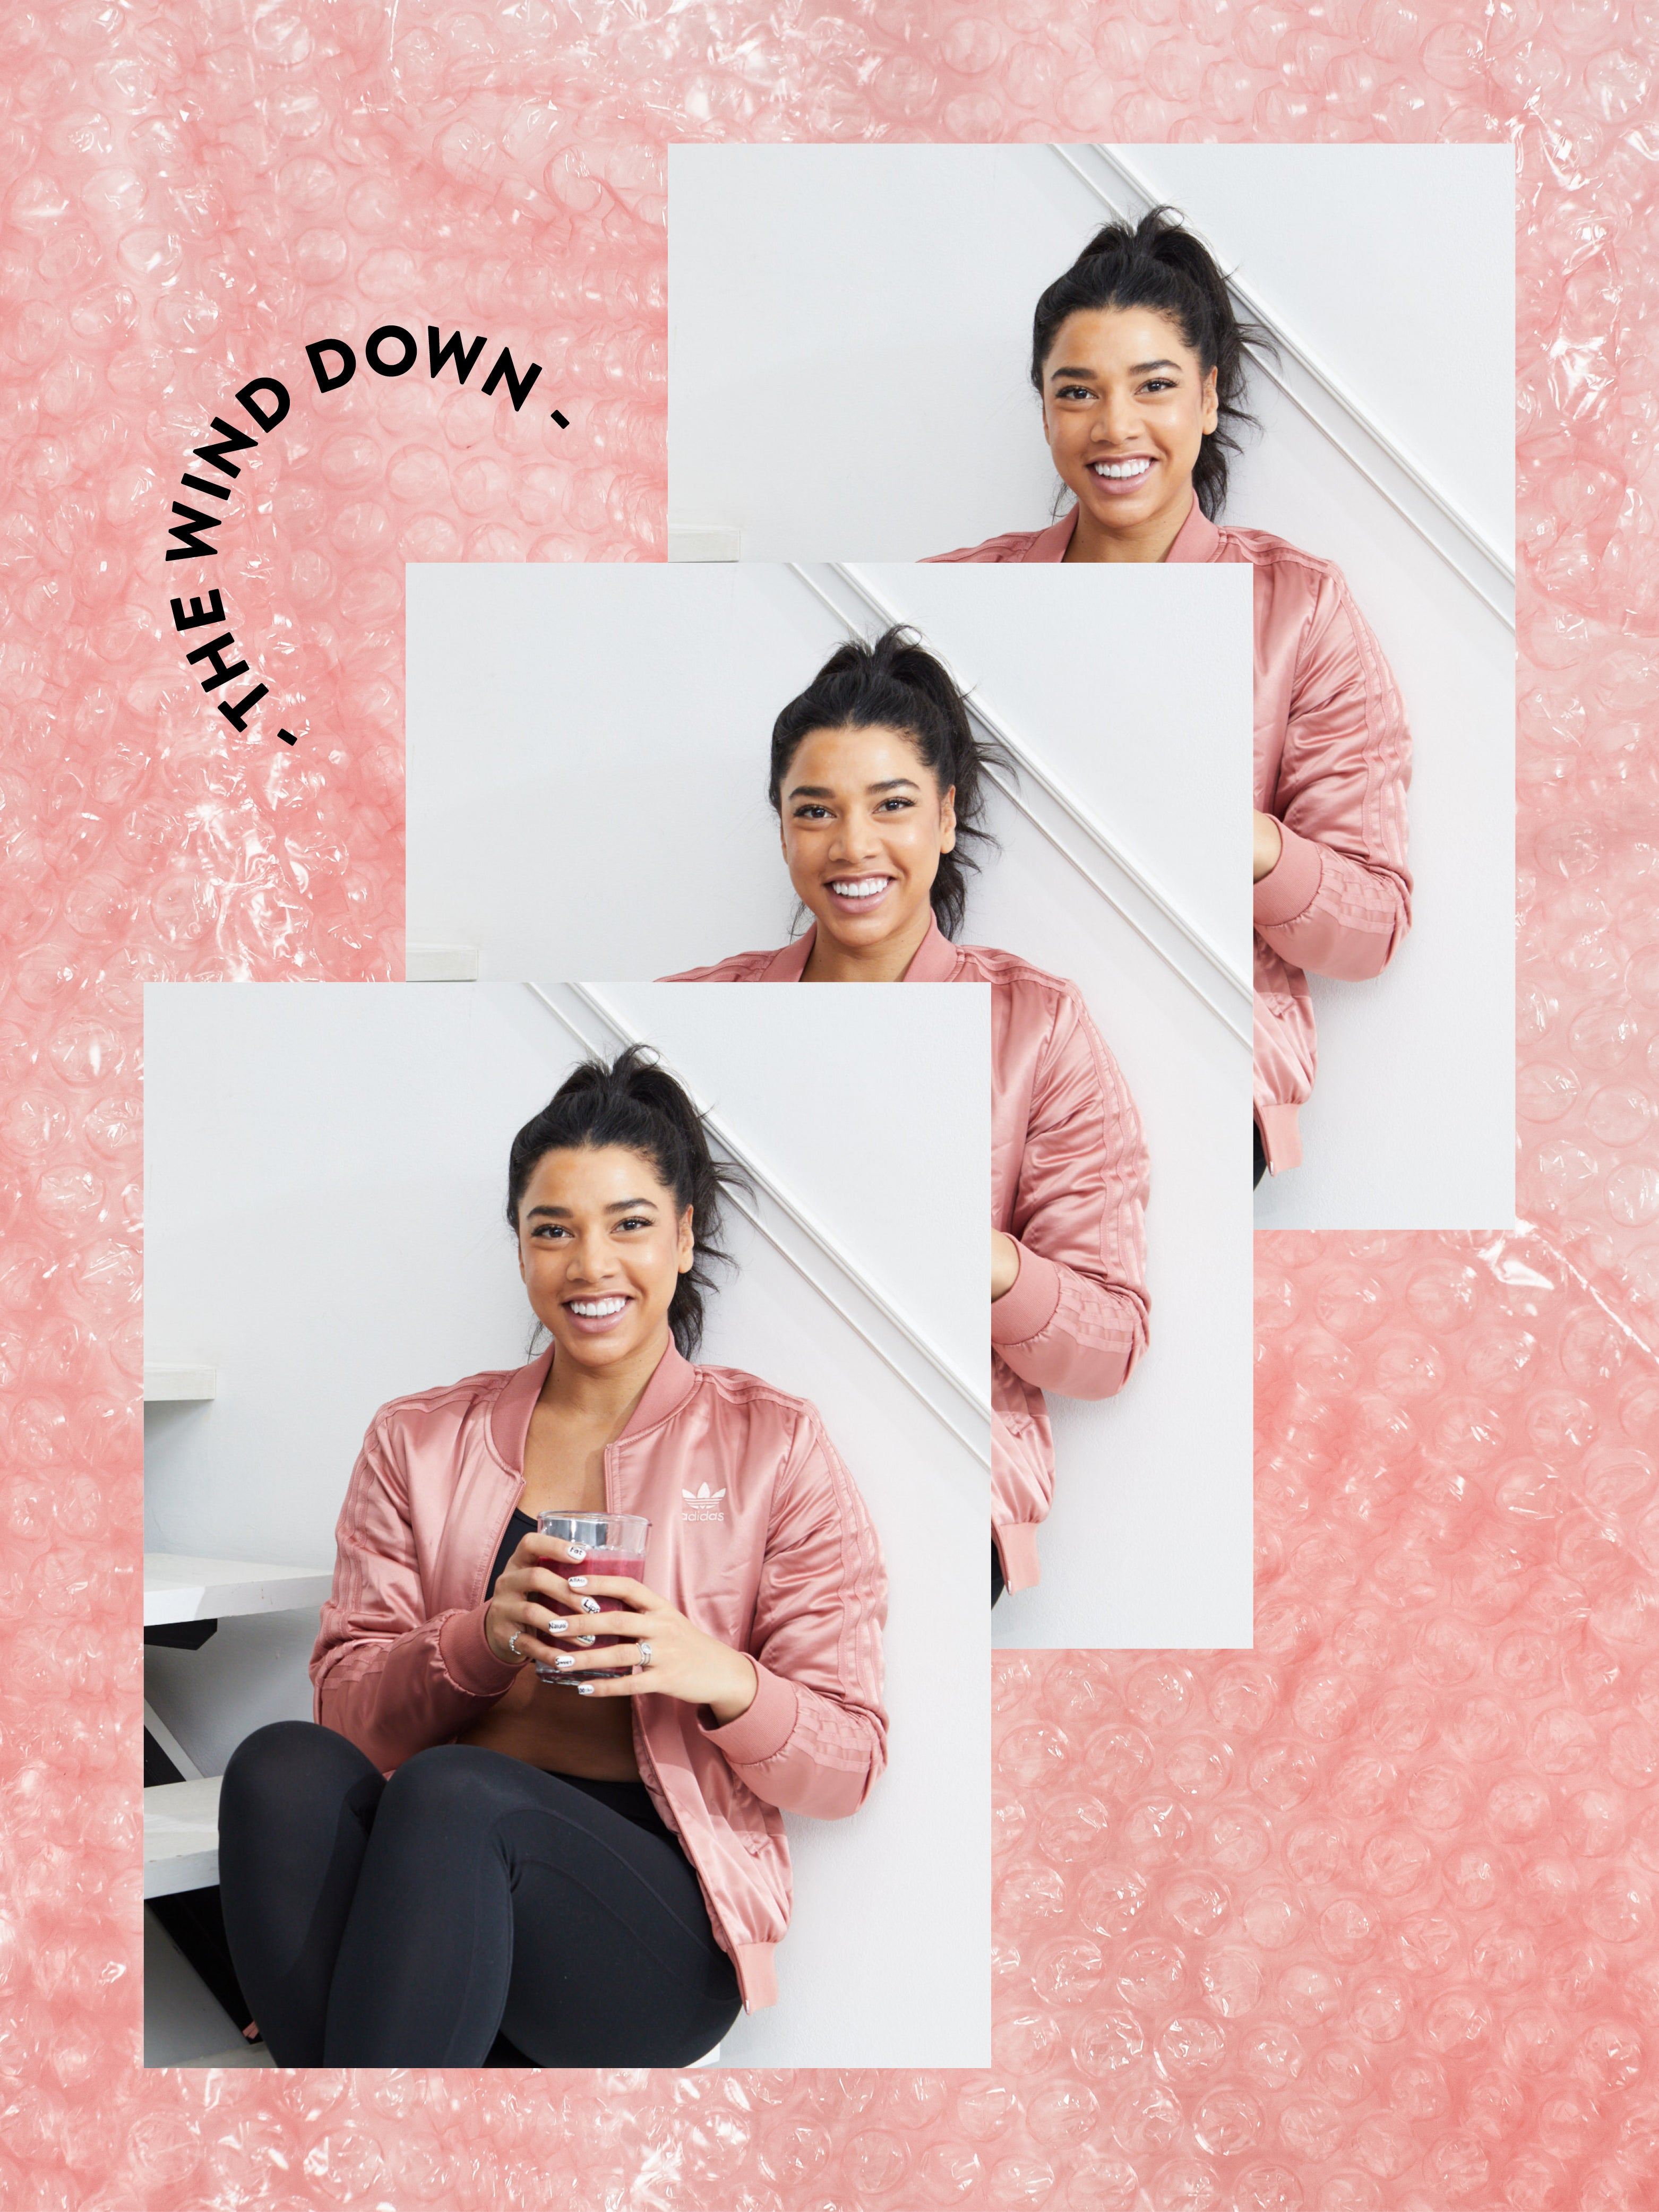 Hannah Bronfman's Nighttime Routine Involves Chilling Out to a Good Netflix Thriller